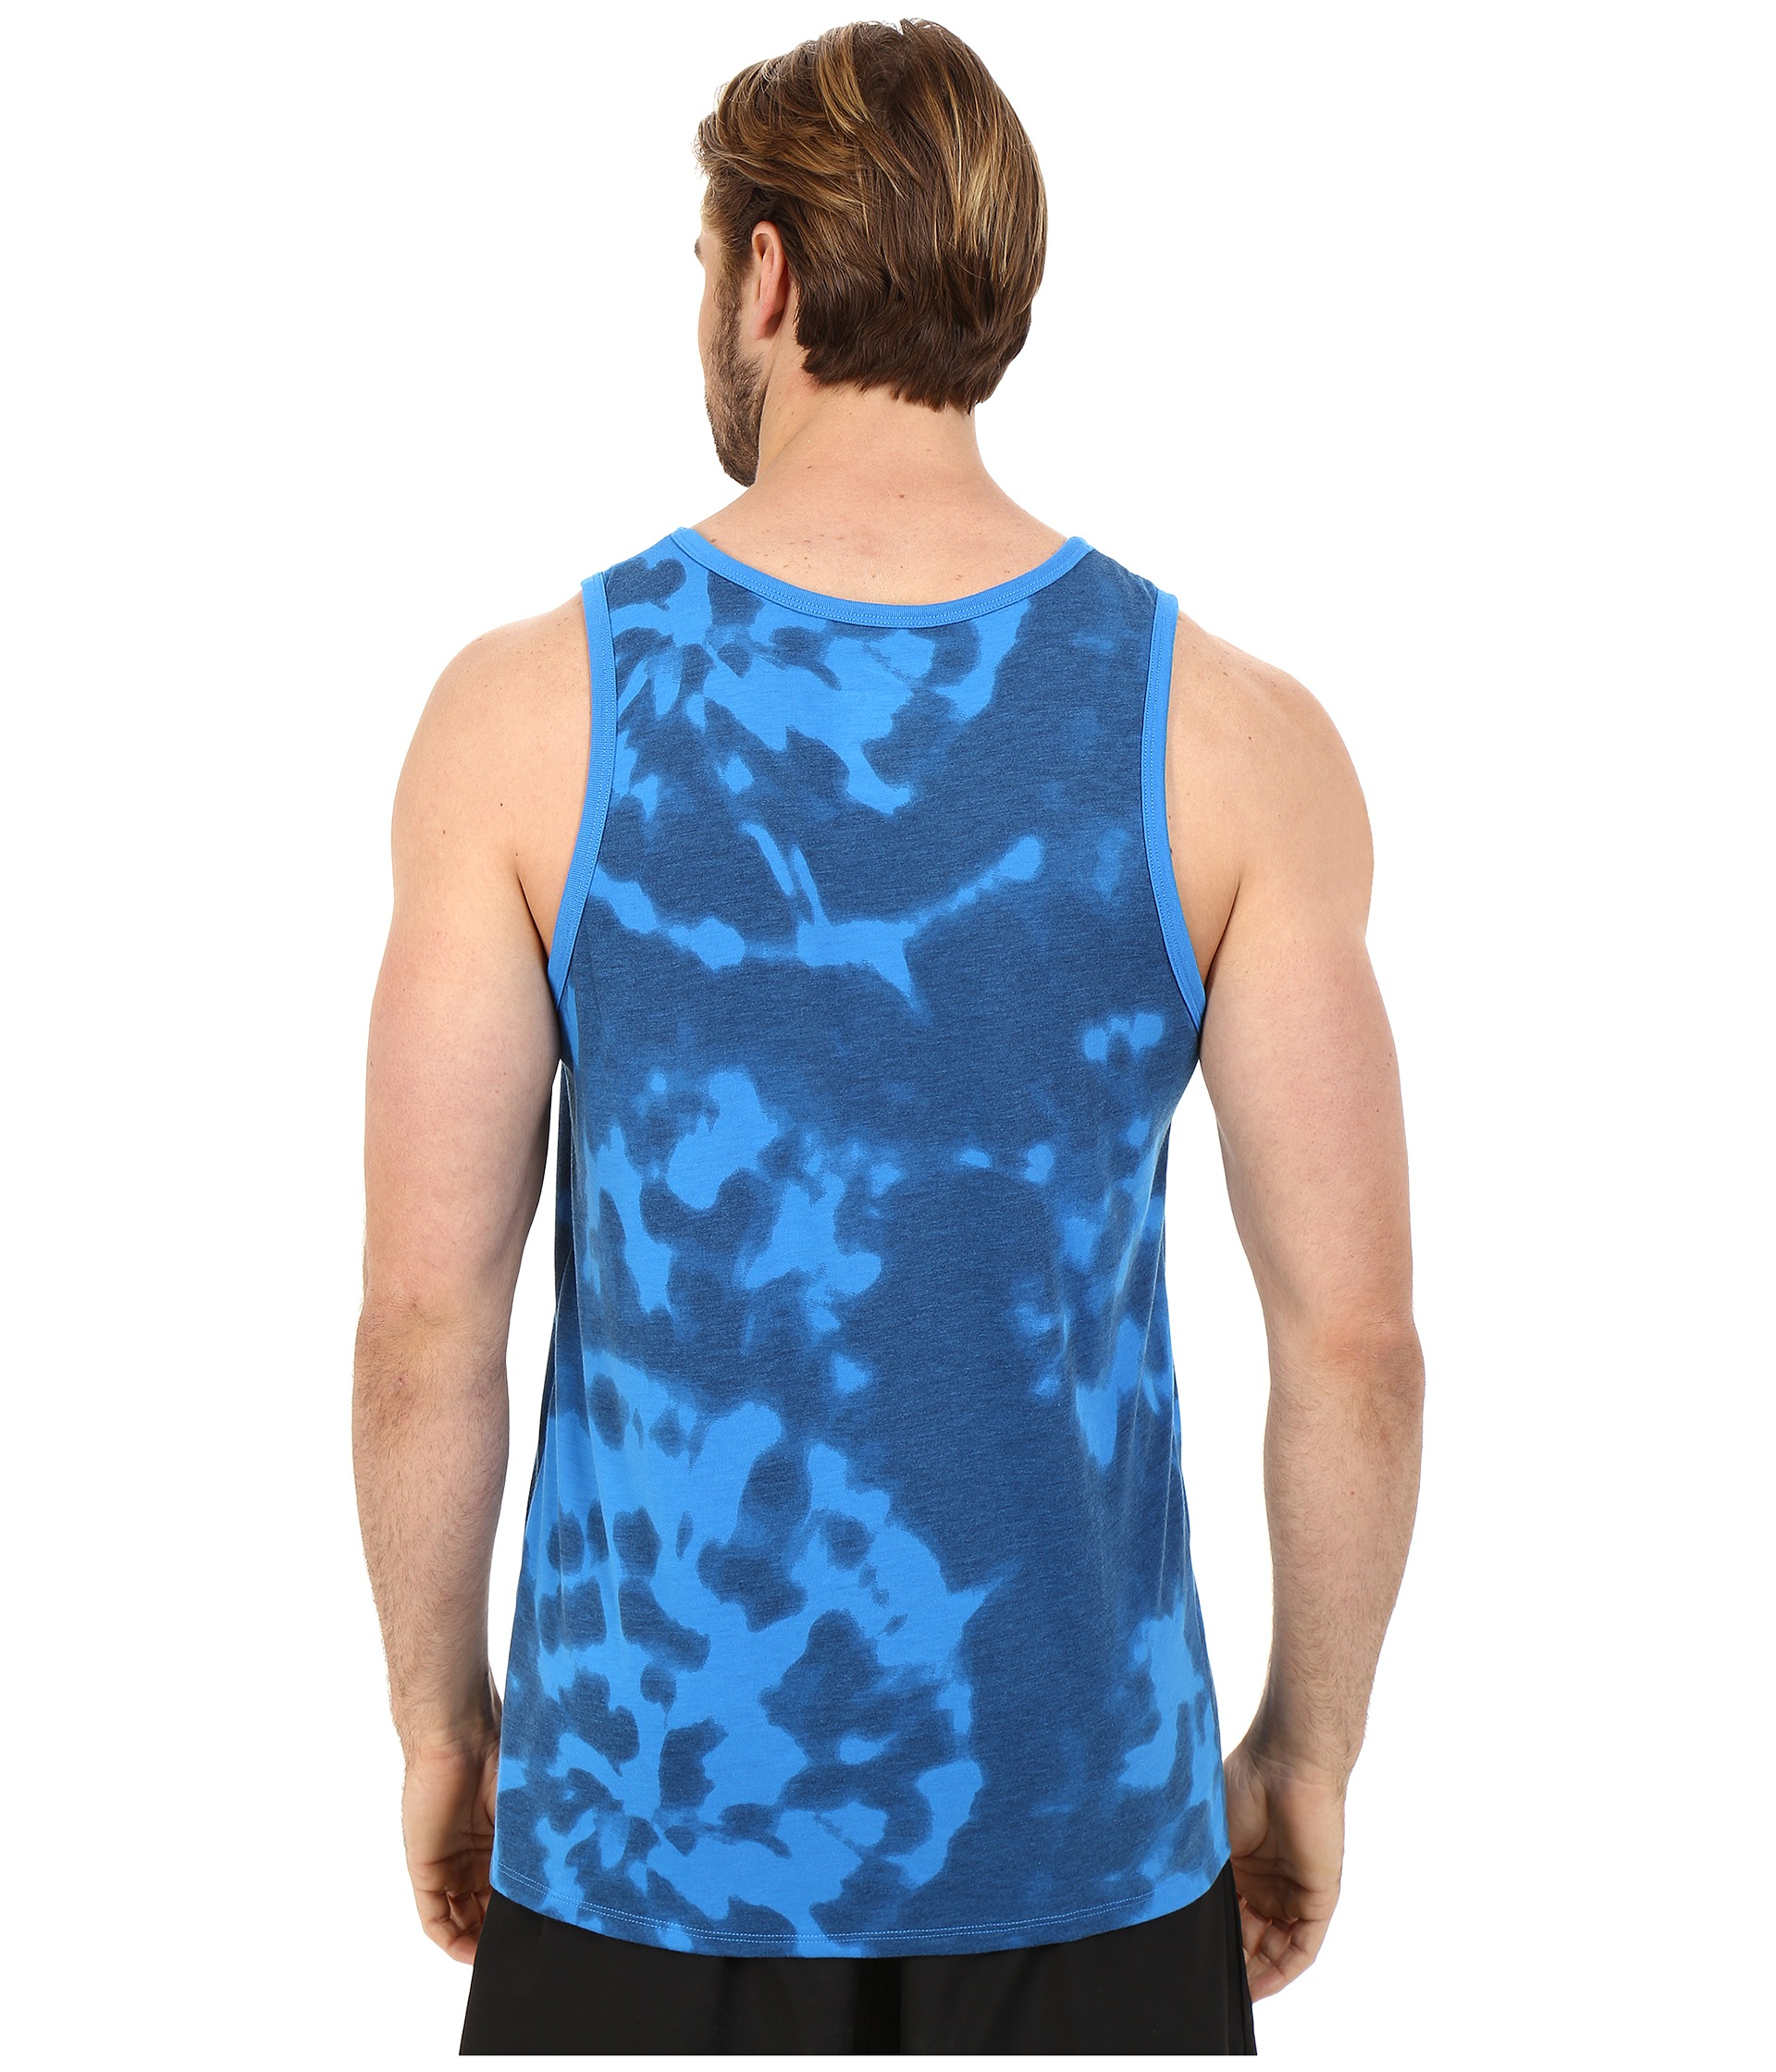 Nike run tie dye tank top in blue for men lyst for Nike tie dye shirt and shorts